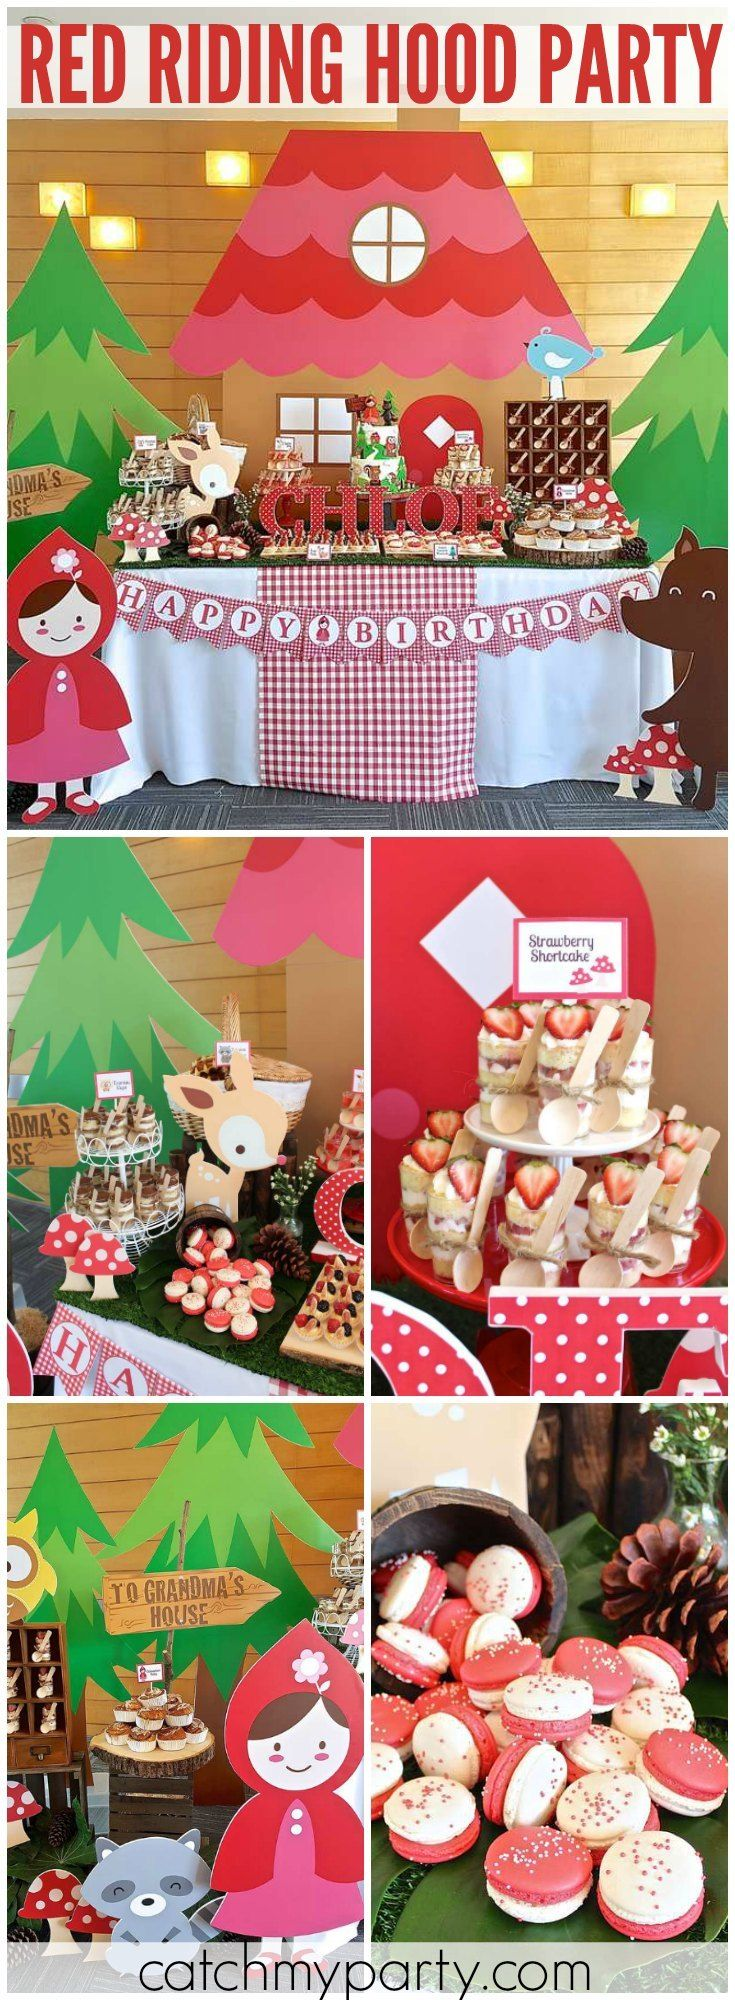 So many fantastic ideas at a Little Red Riding Hood party! See more party ideas at Catchmyparty.com!